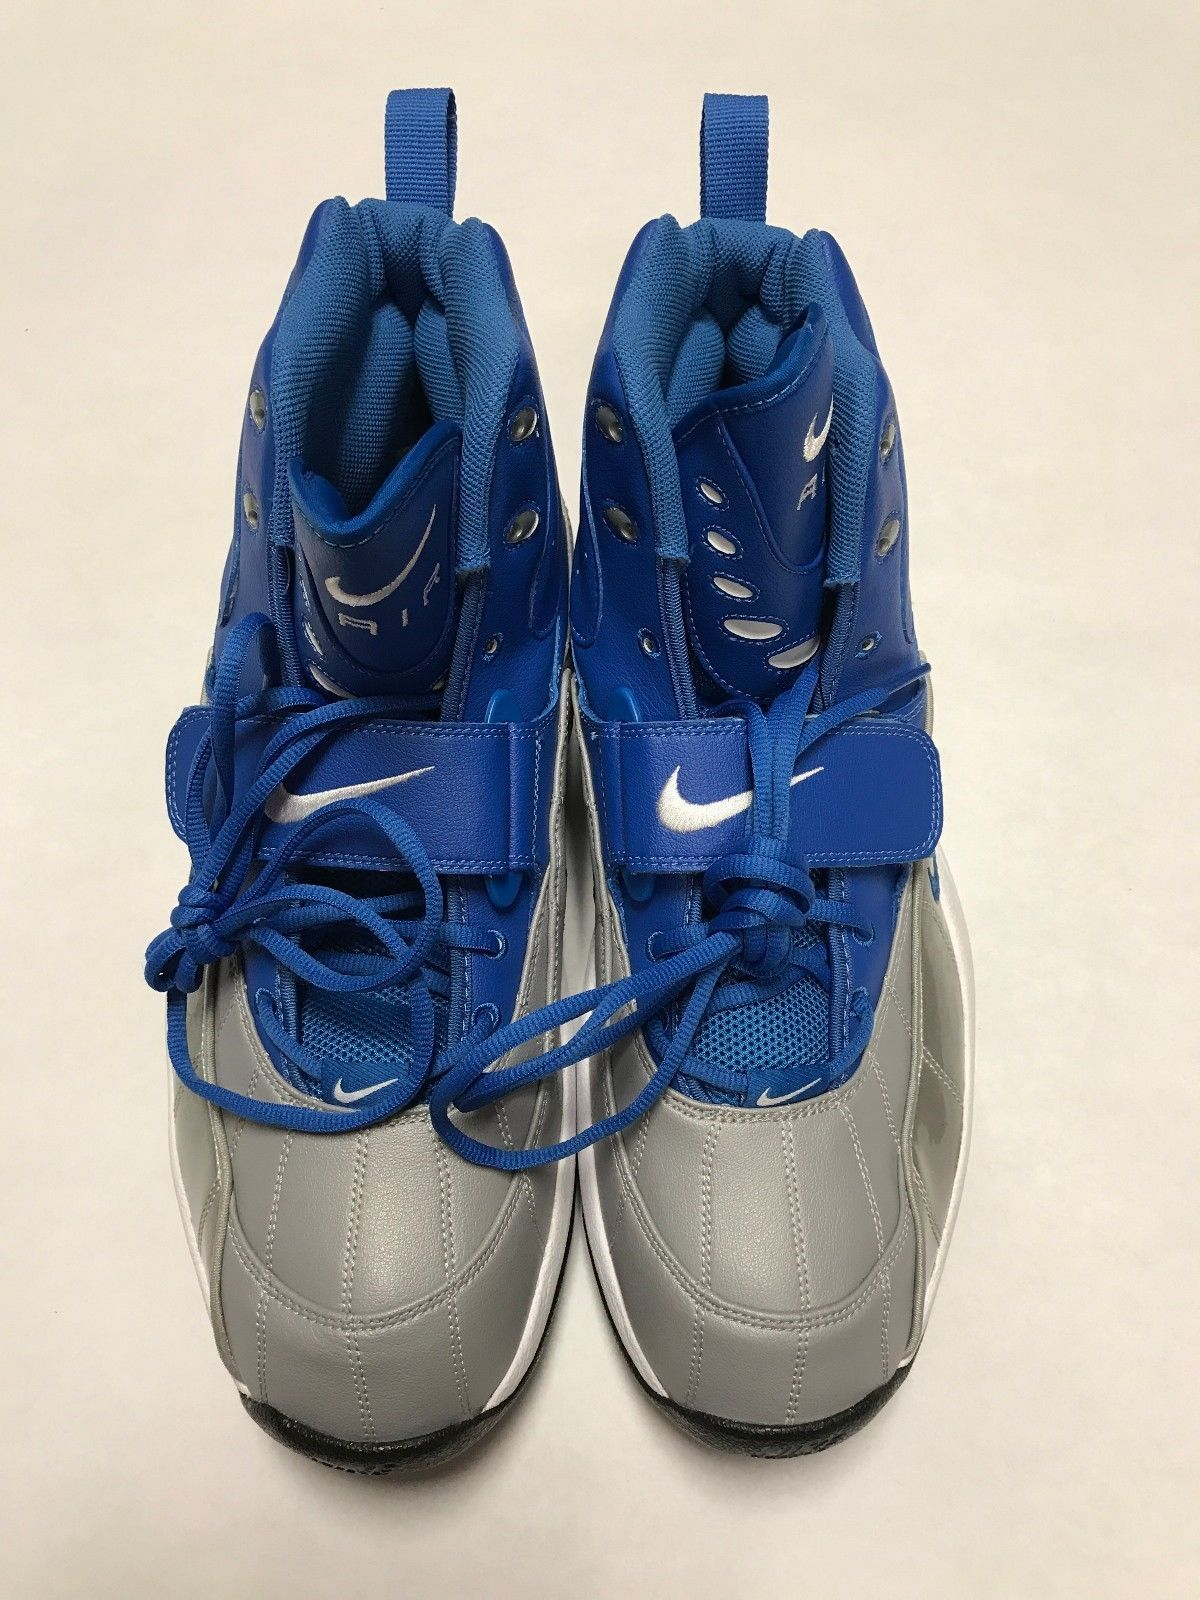 90027ec03b44 Nike Mens' Air Zoom Pro Shark Football Cleat and 50 similar items